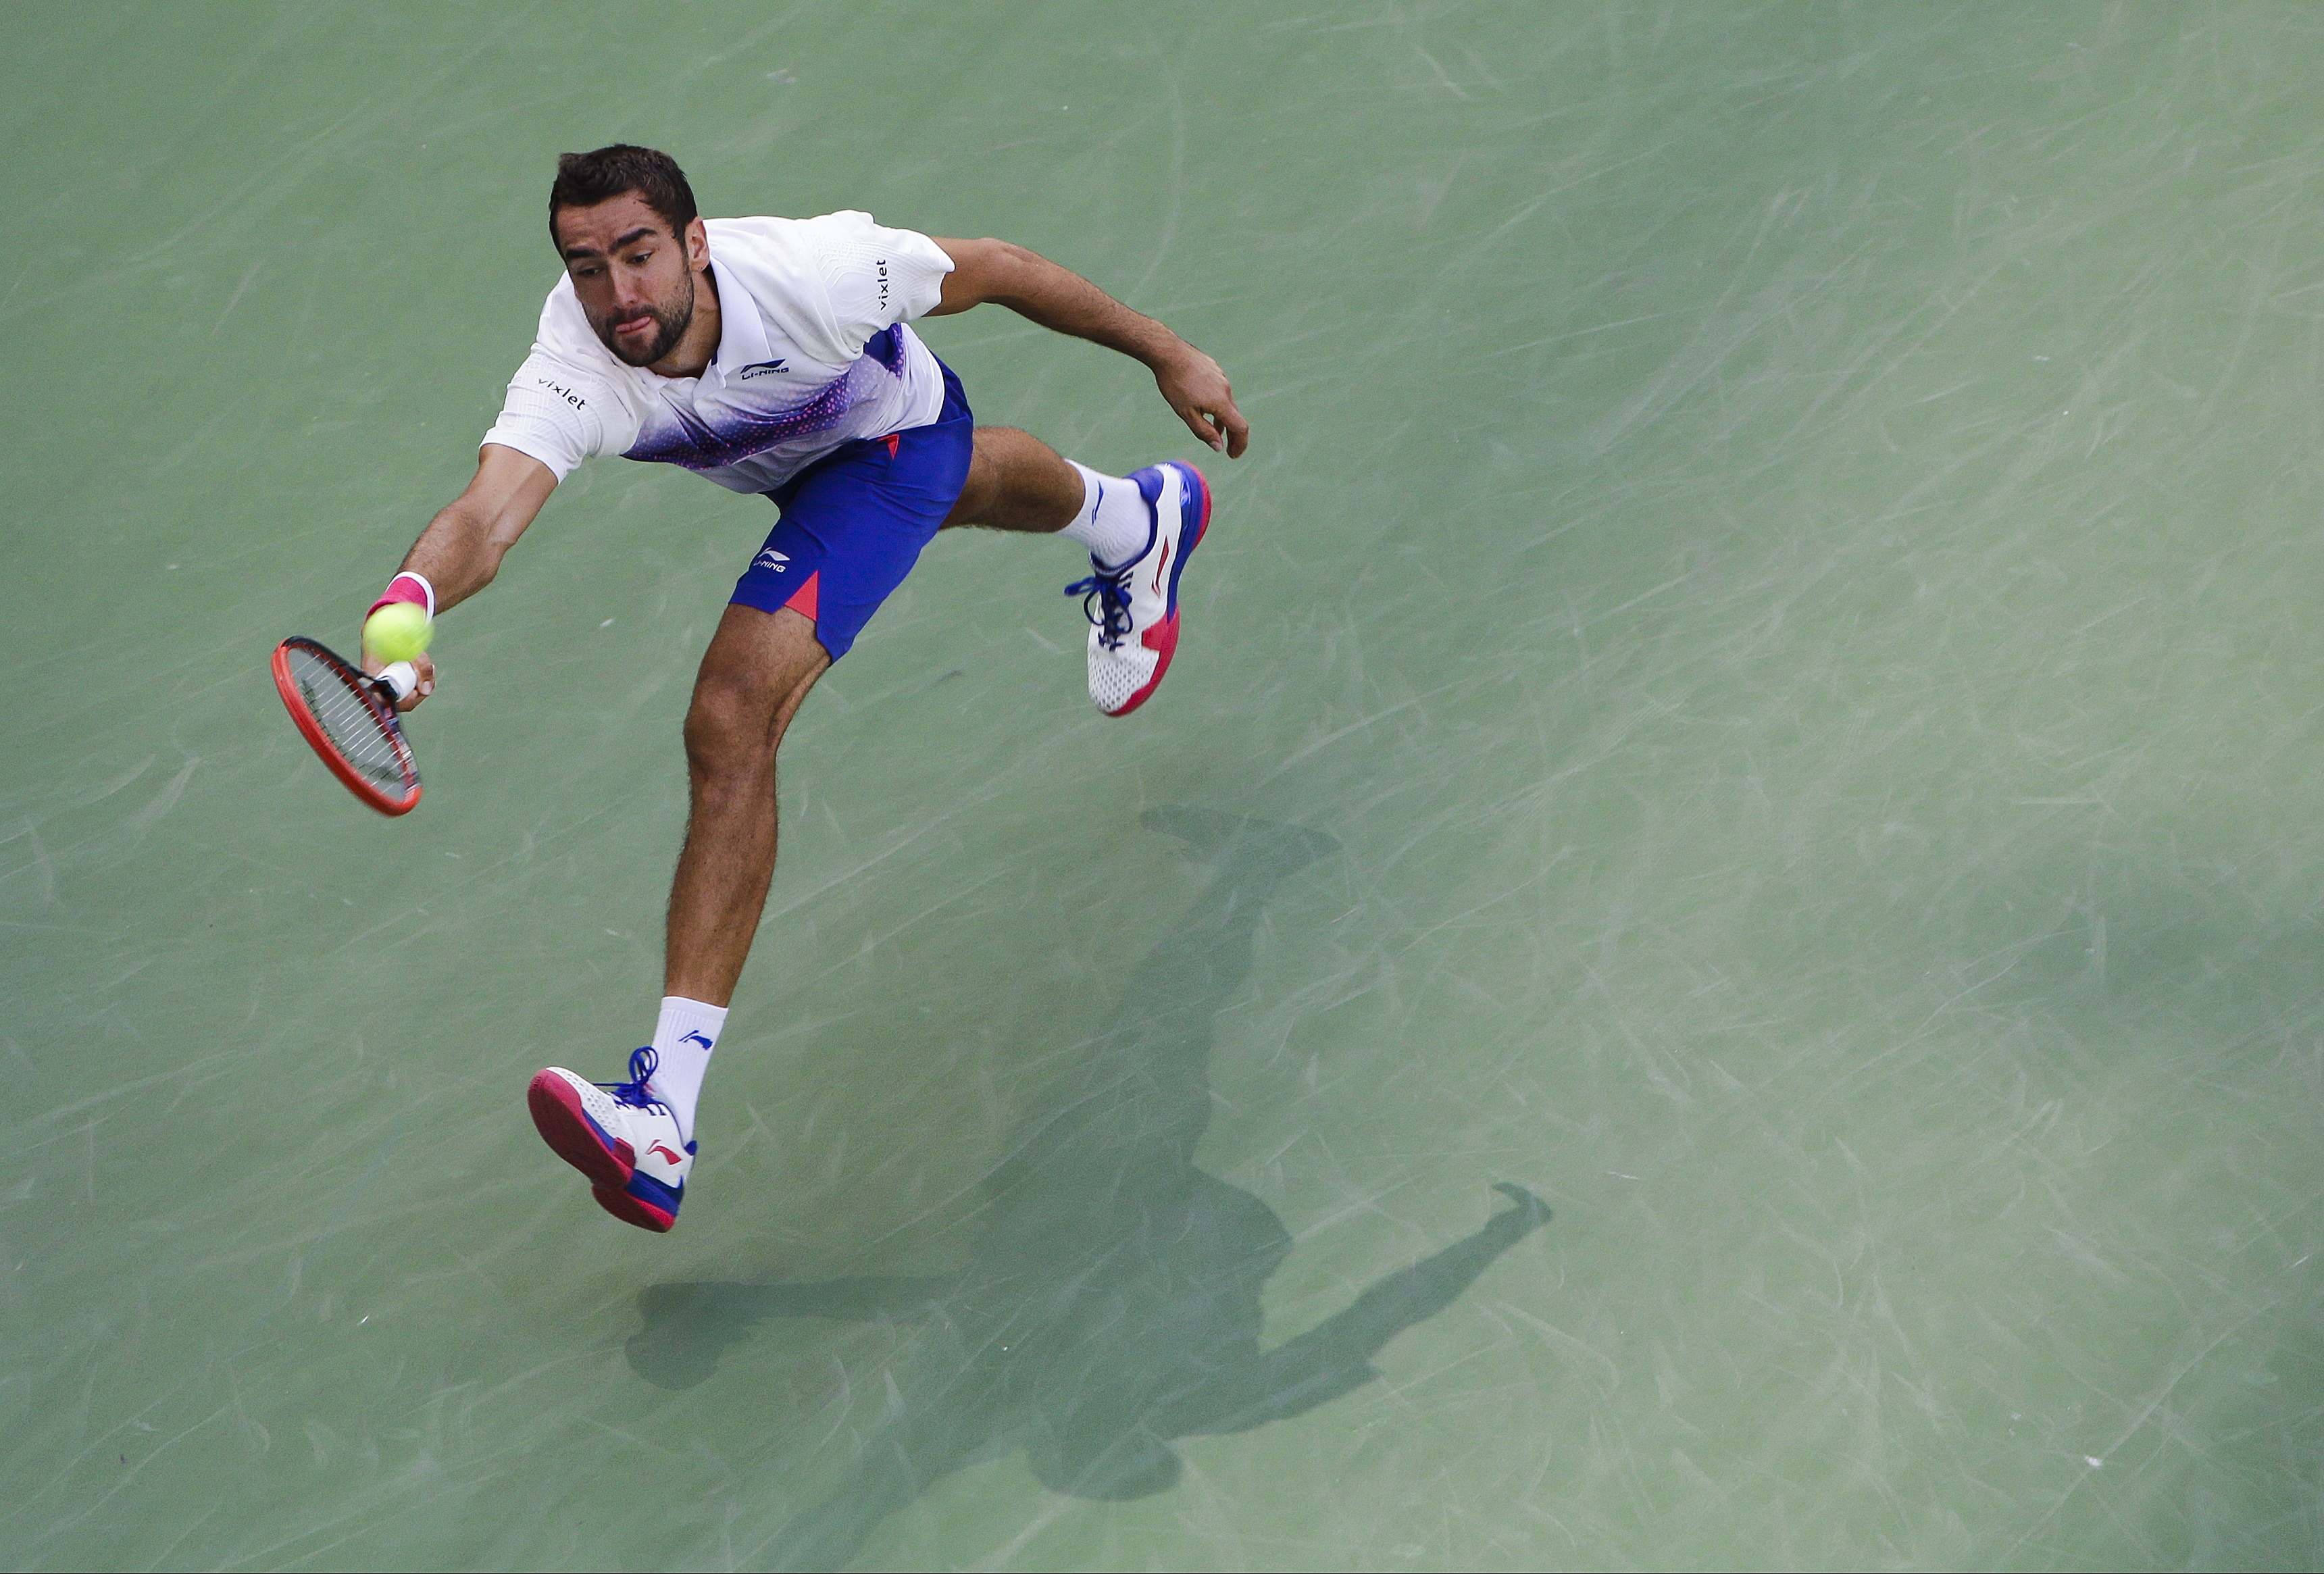 Marin Cilic, of Croatia, reaches a shot by Jeremy Chardy, of France, during the fourth round of the U.S. Open tennis tournament, Sunday, Sept. 6, 2015, in New York. (AP Photo/Matt Rourke)